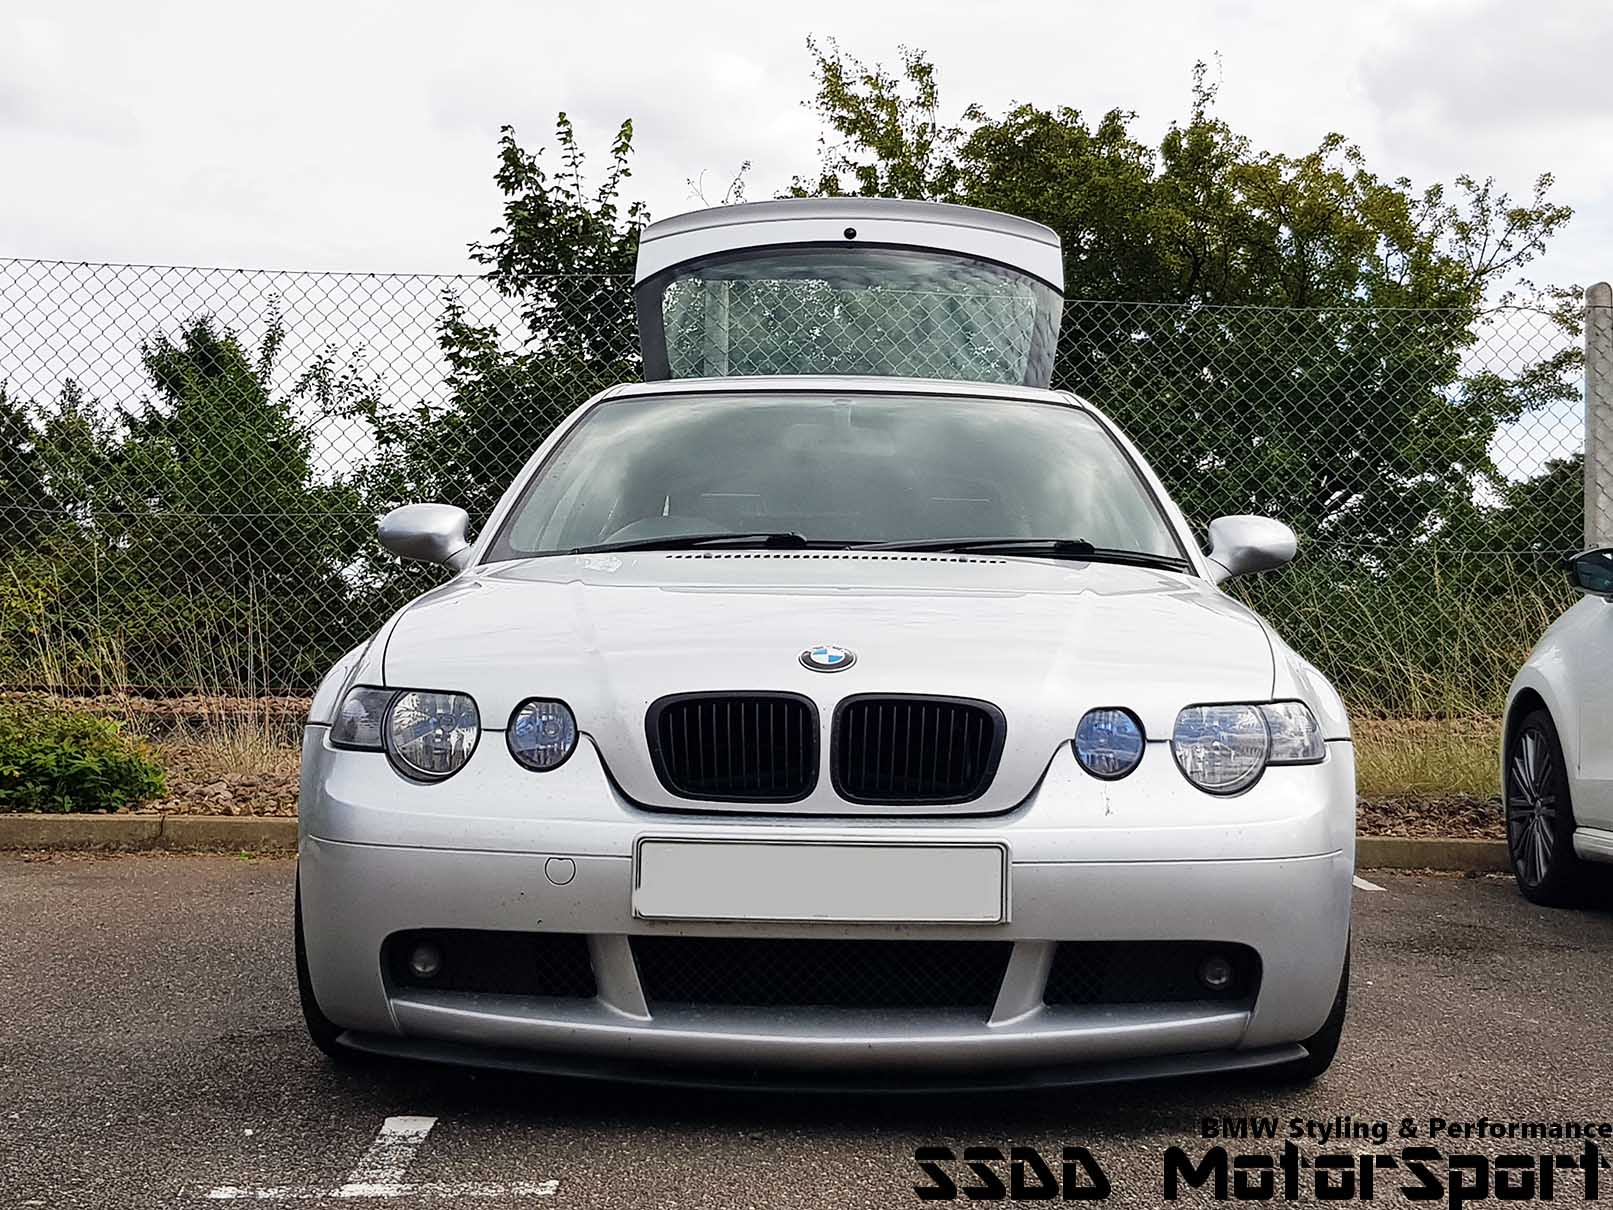 e46-compact-m3-mirrors-fitted.jpg